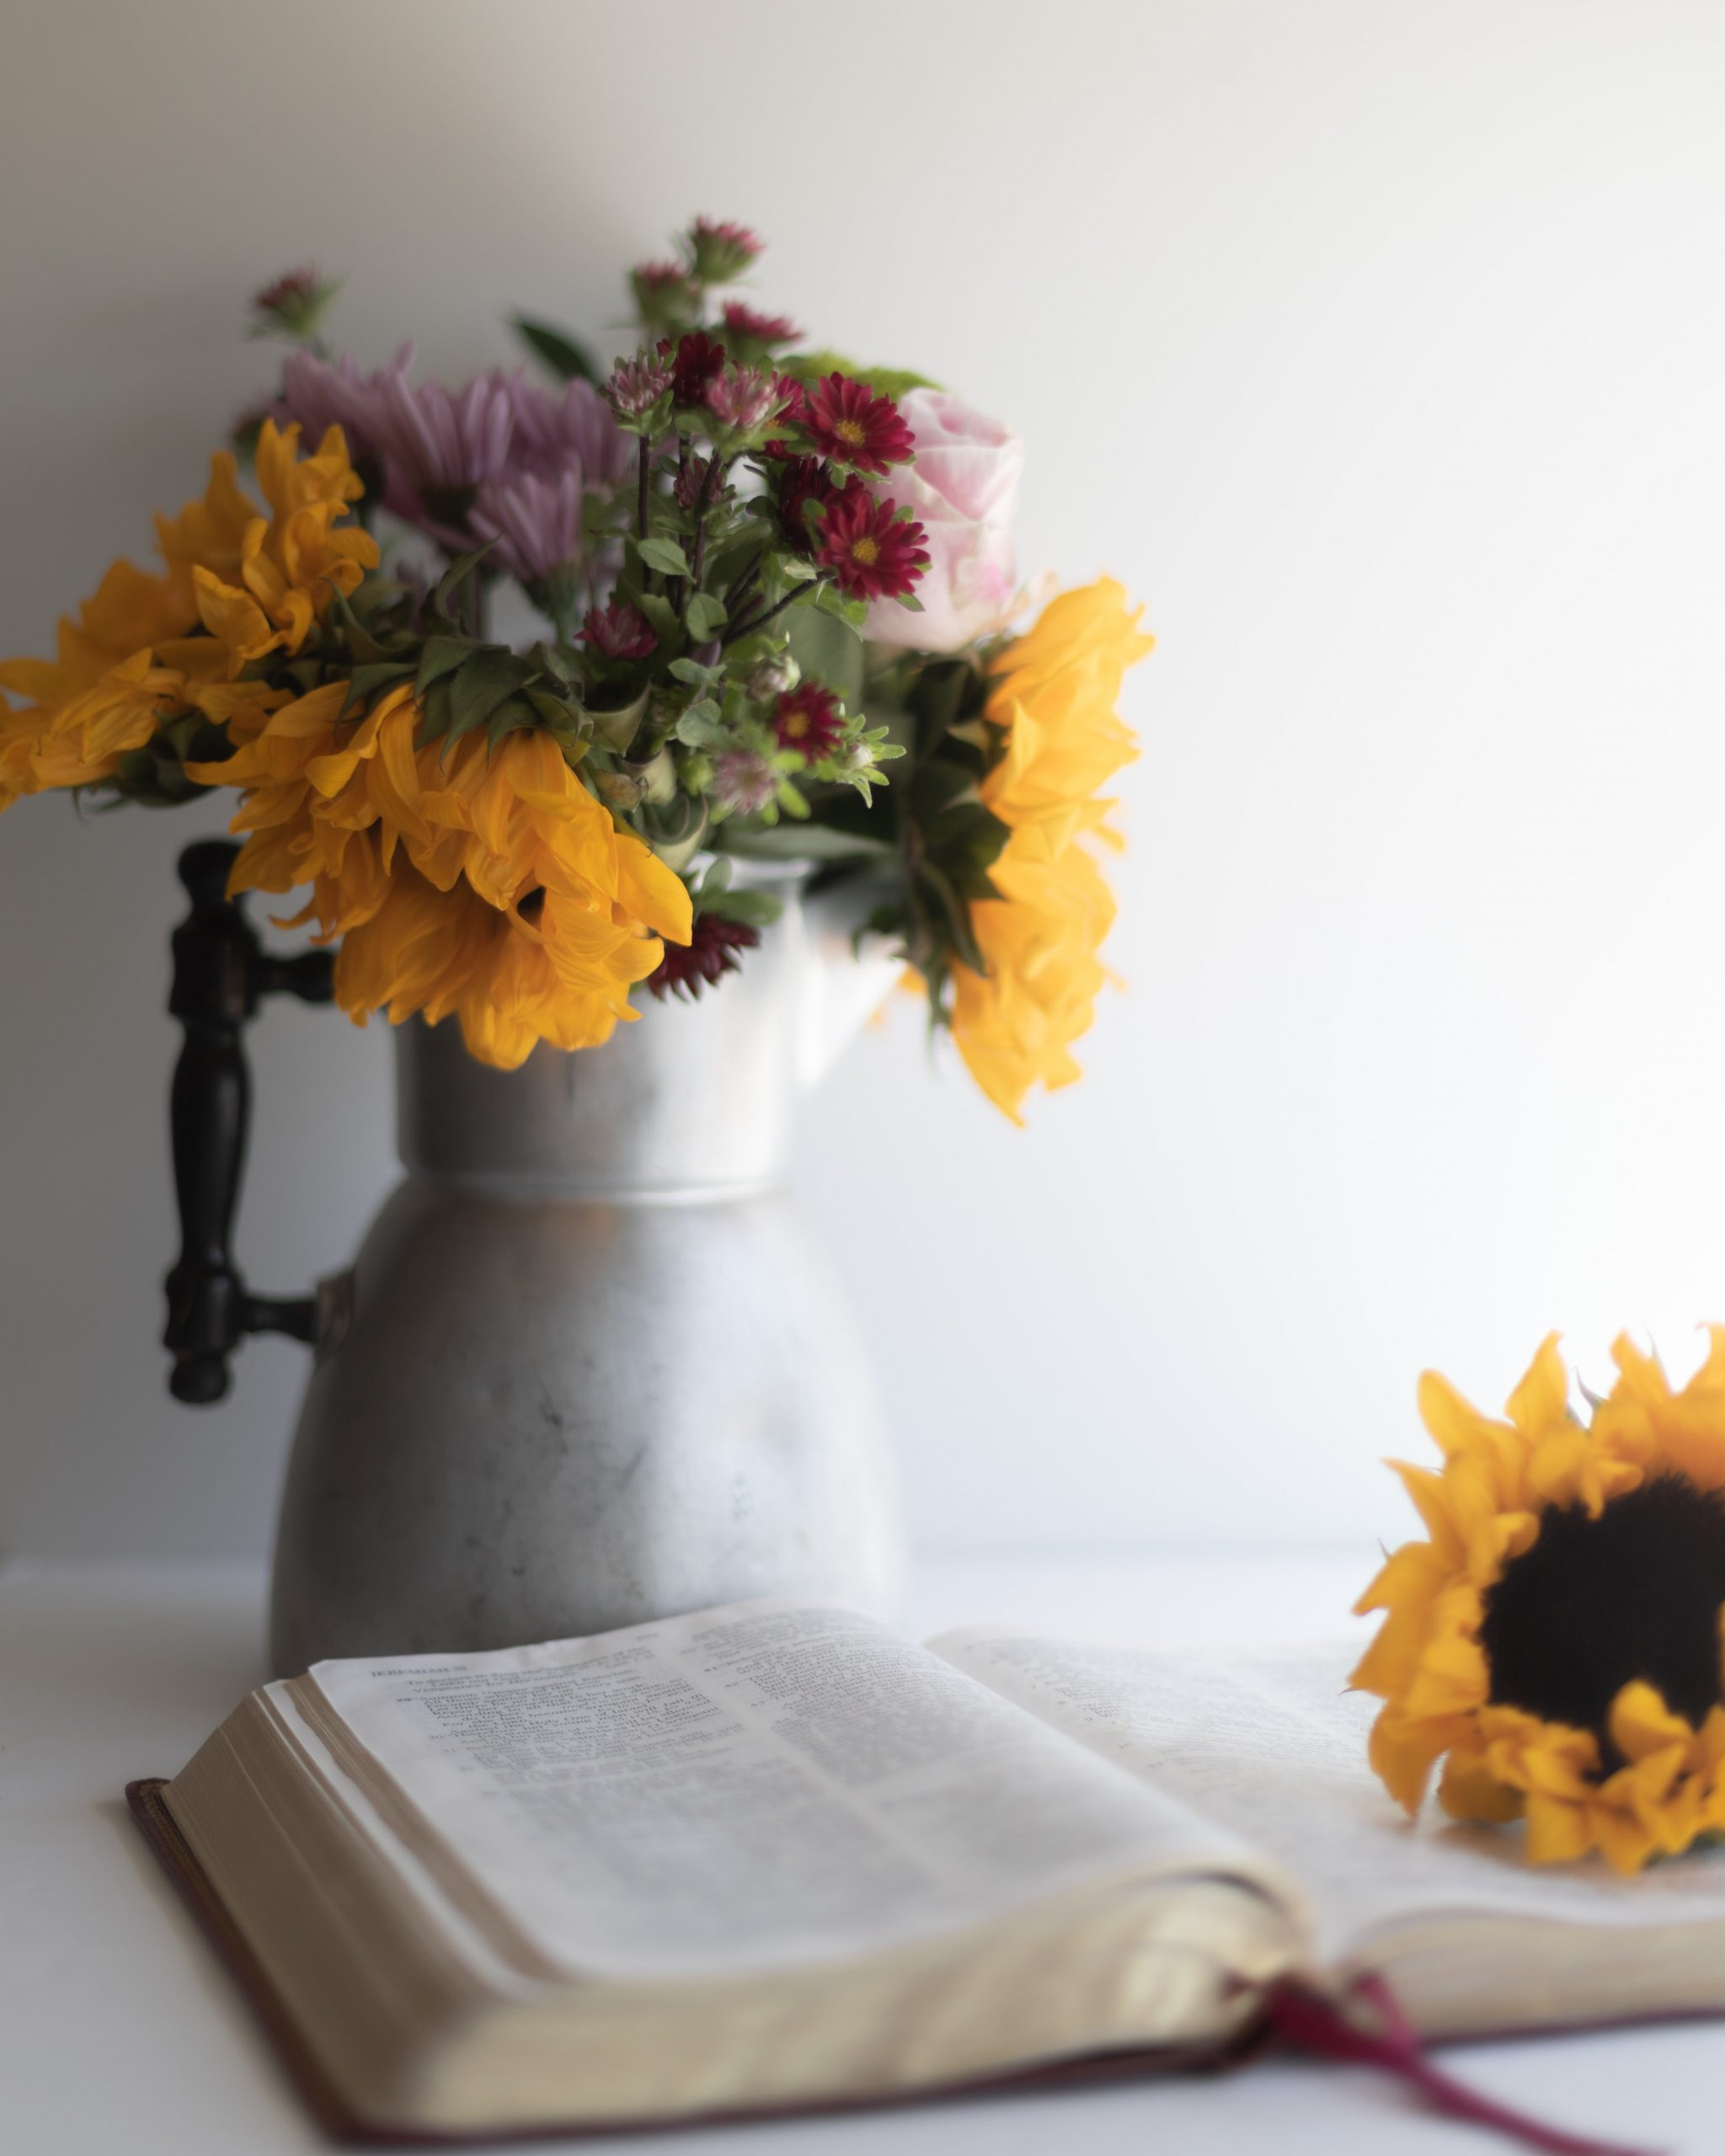 3 Tips for Maintaining Structure and Discipline in Prayer During the Summer